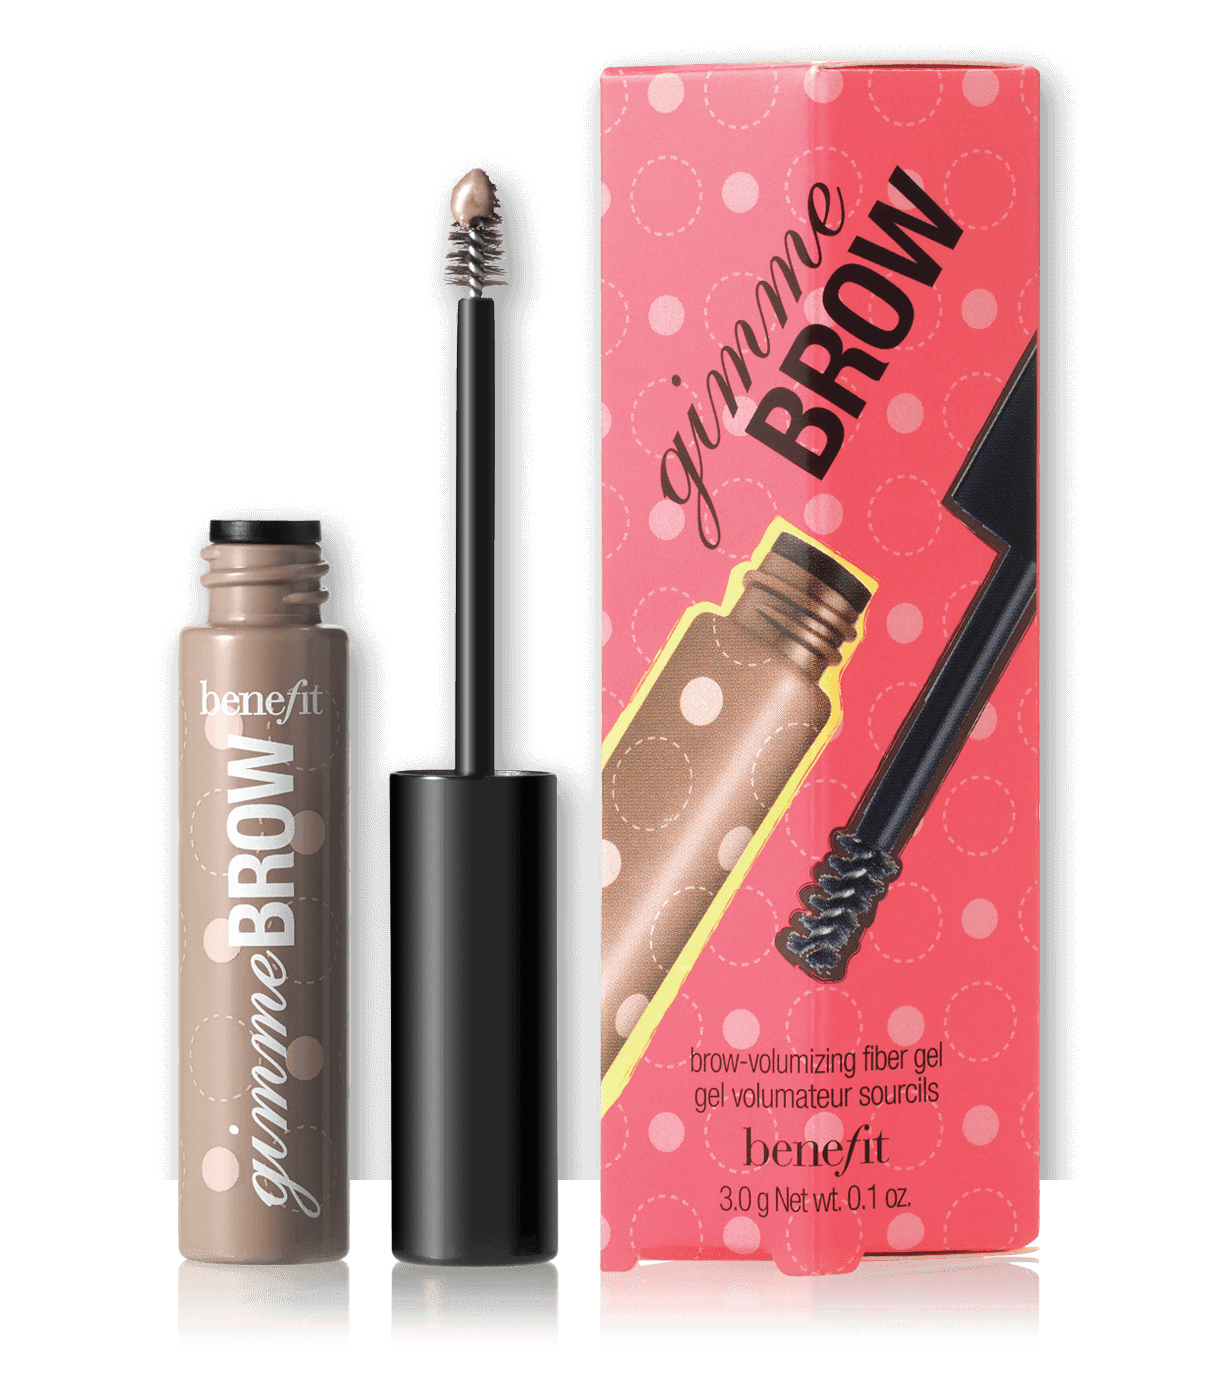 Benefit Eye Mascara hd pictures